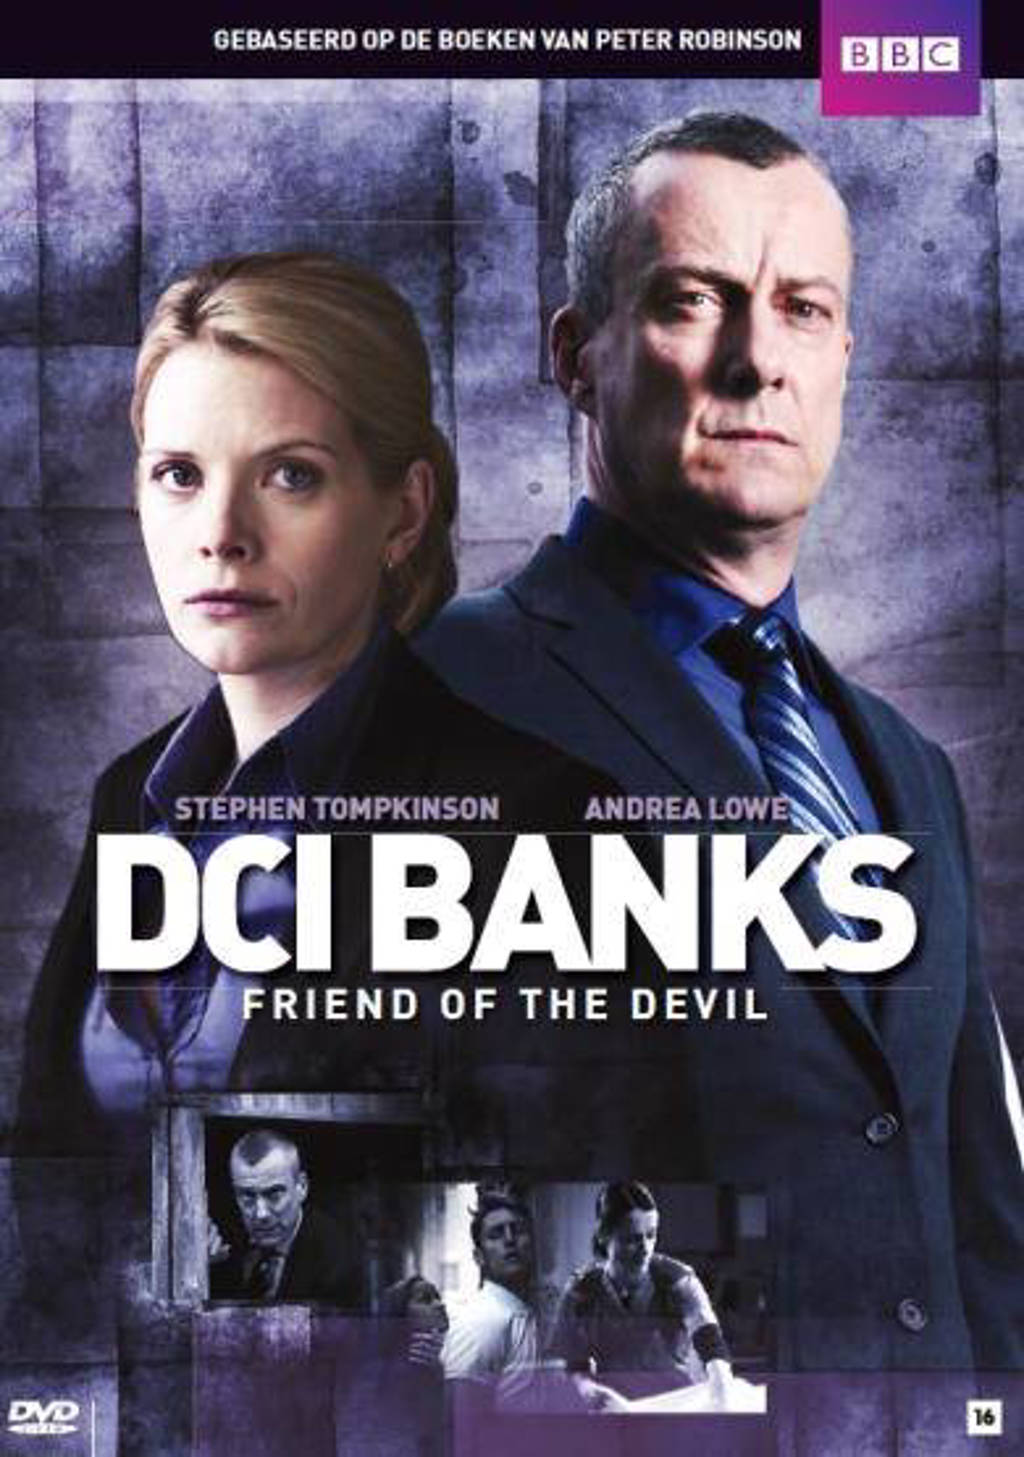 DCI Banks - Friend of the devil (DVD)